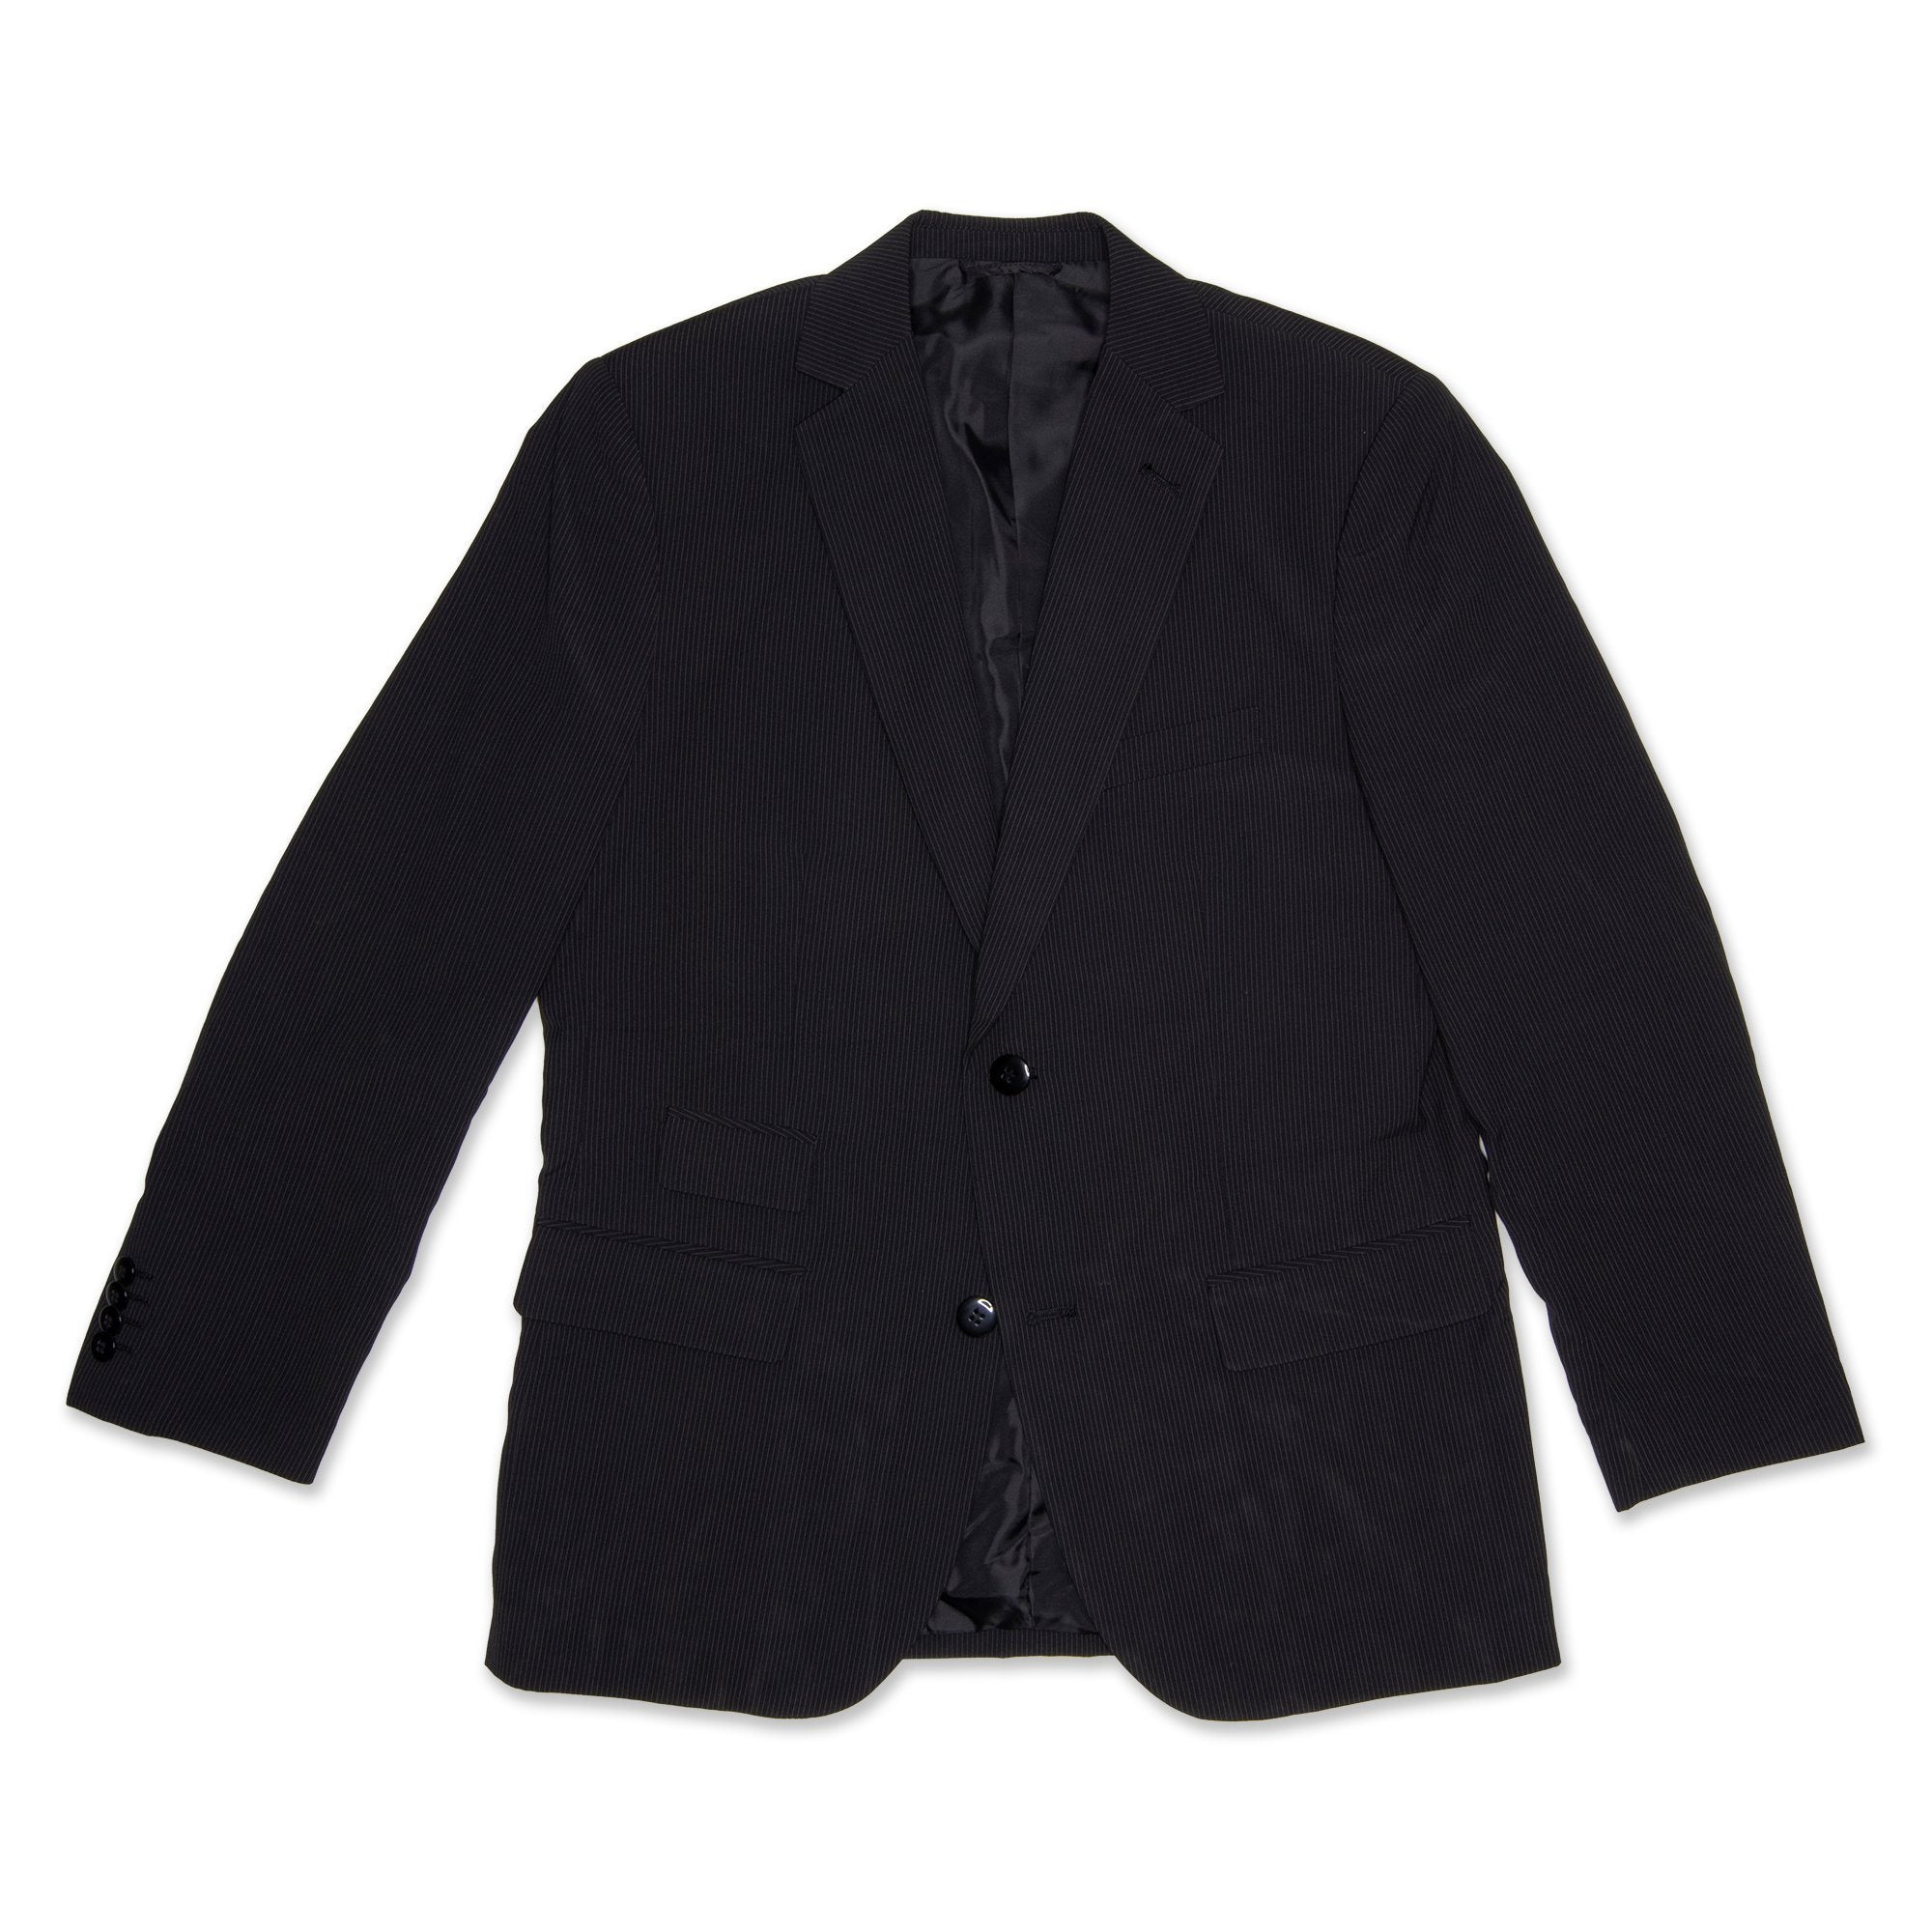 Fred Bracks Single Breasted 2 Button Boy's Jacket Pinstripe - Black Workwear Fred Bracks